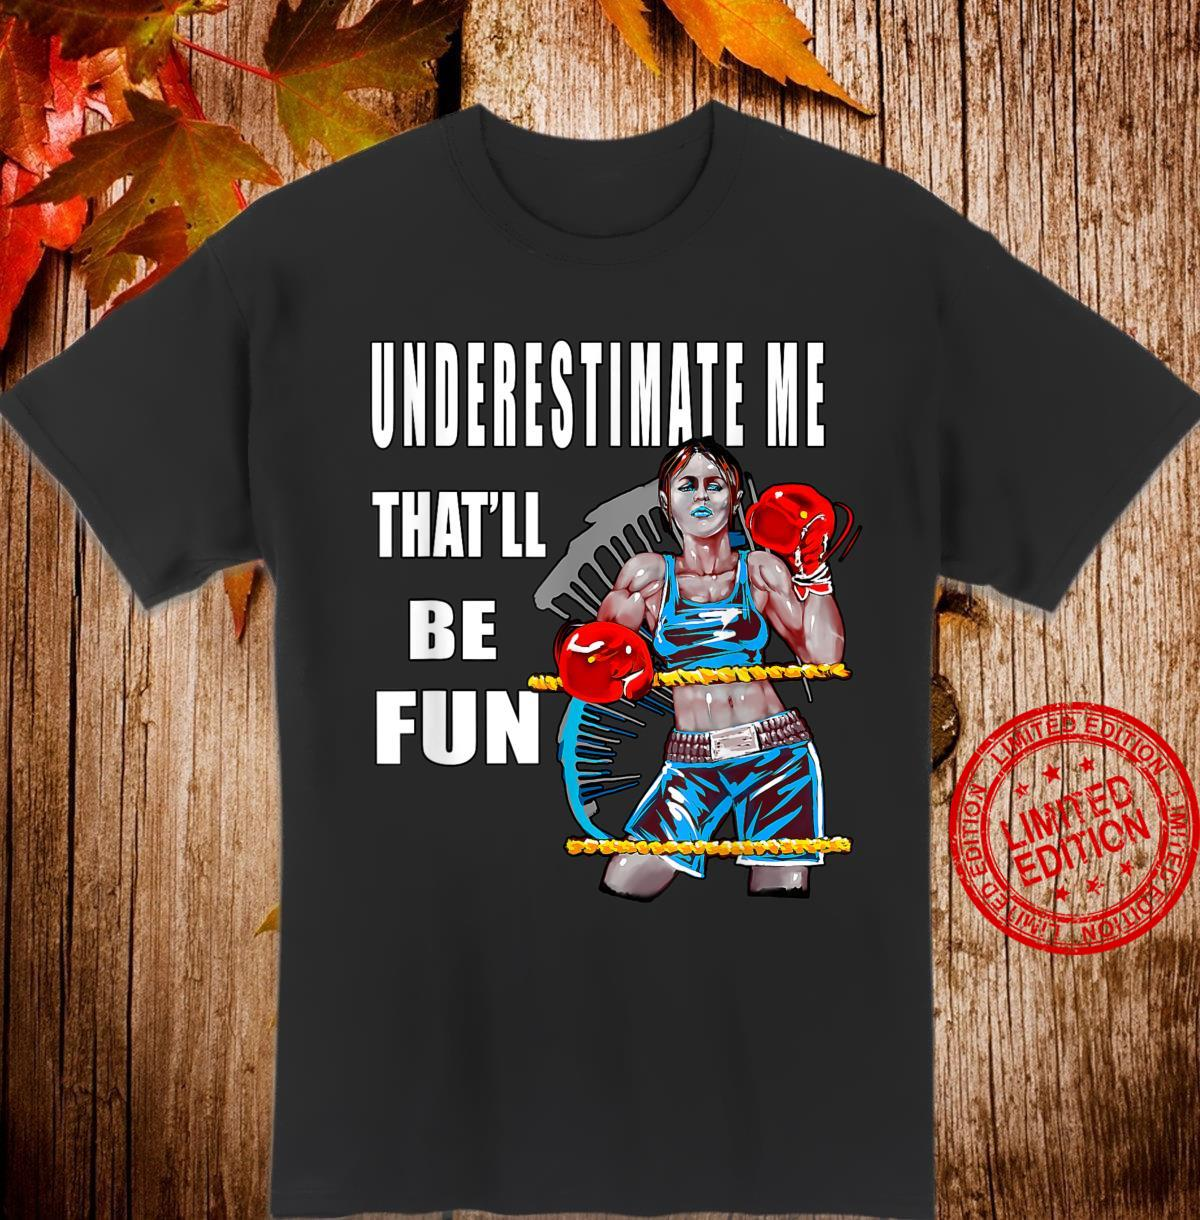 Underestimate Me That'll Be Fun Sarcastic Quote Shirt